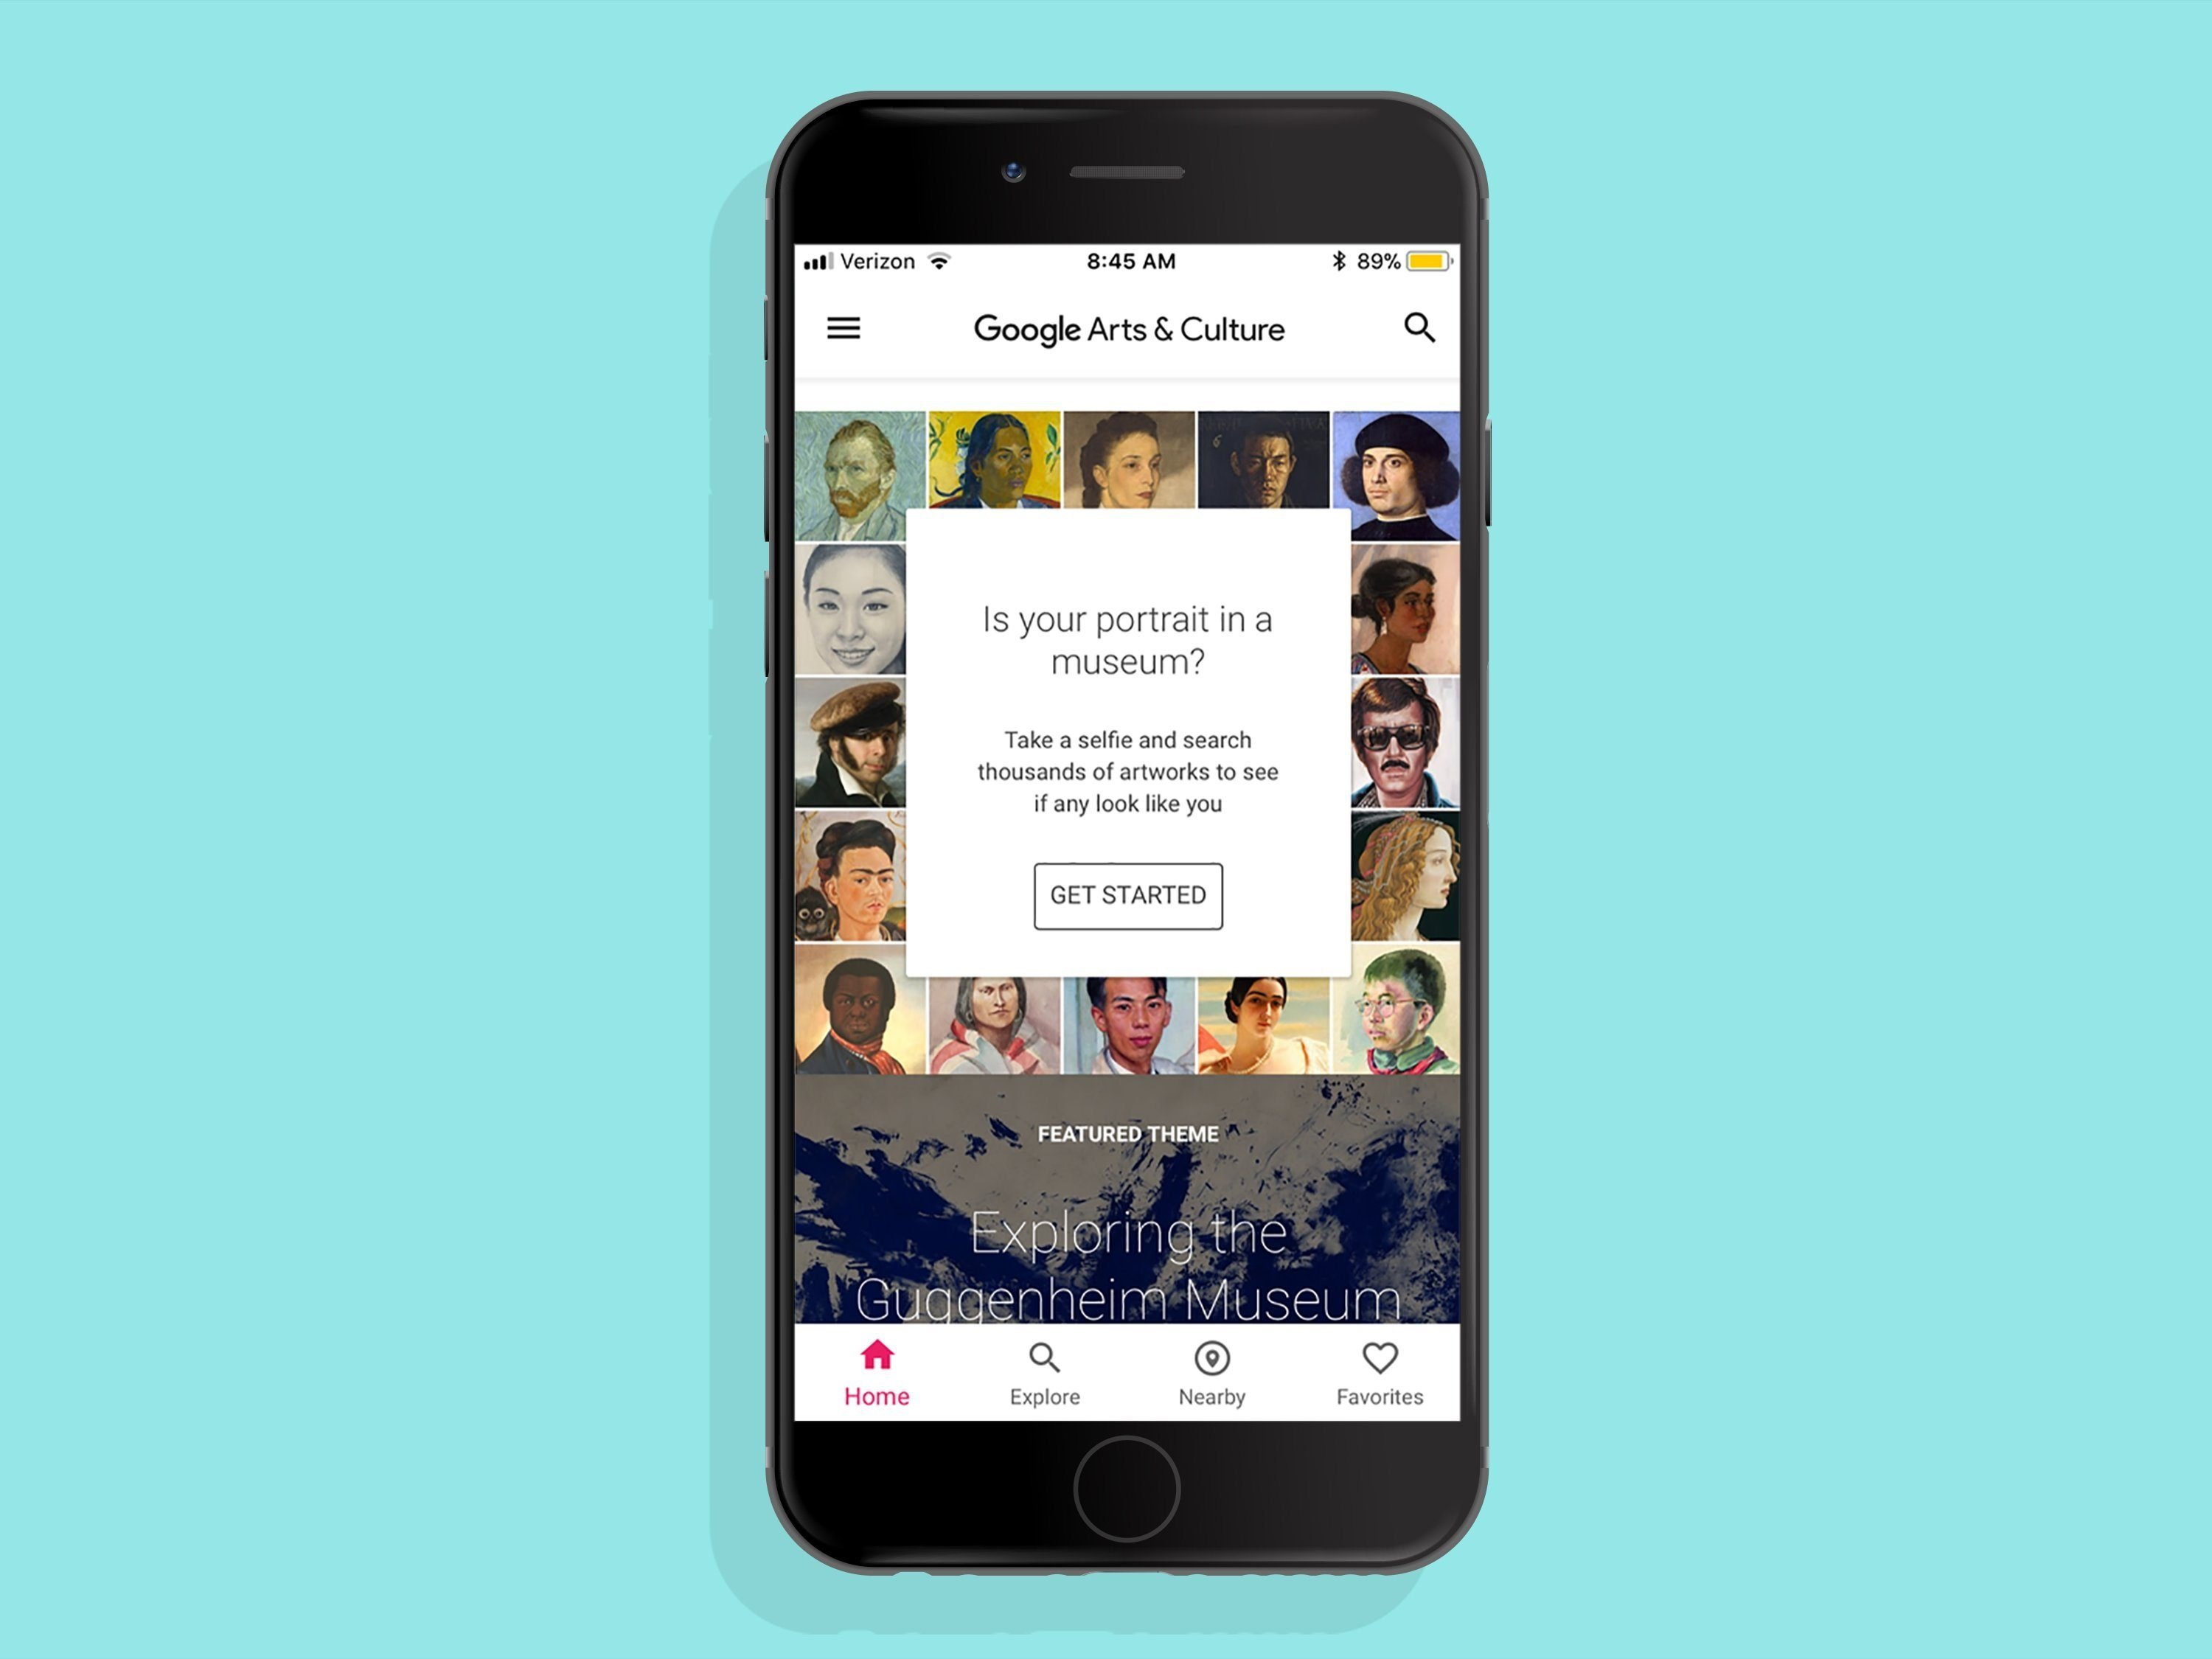 Google Arts & Culture app lets users find their artwork lookalike